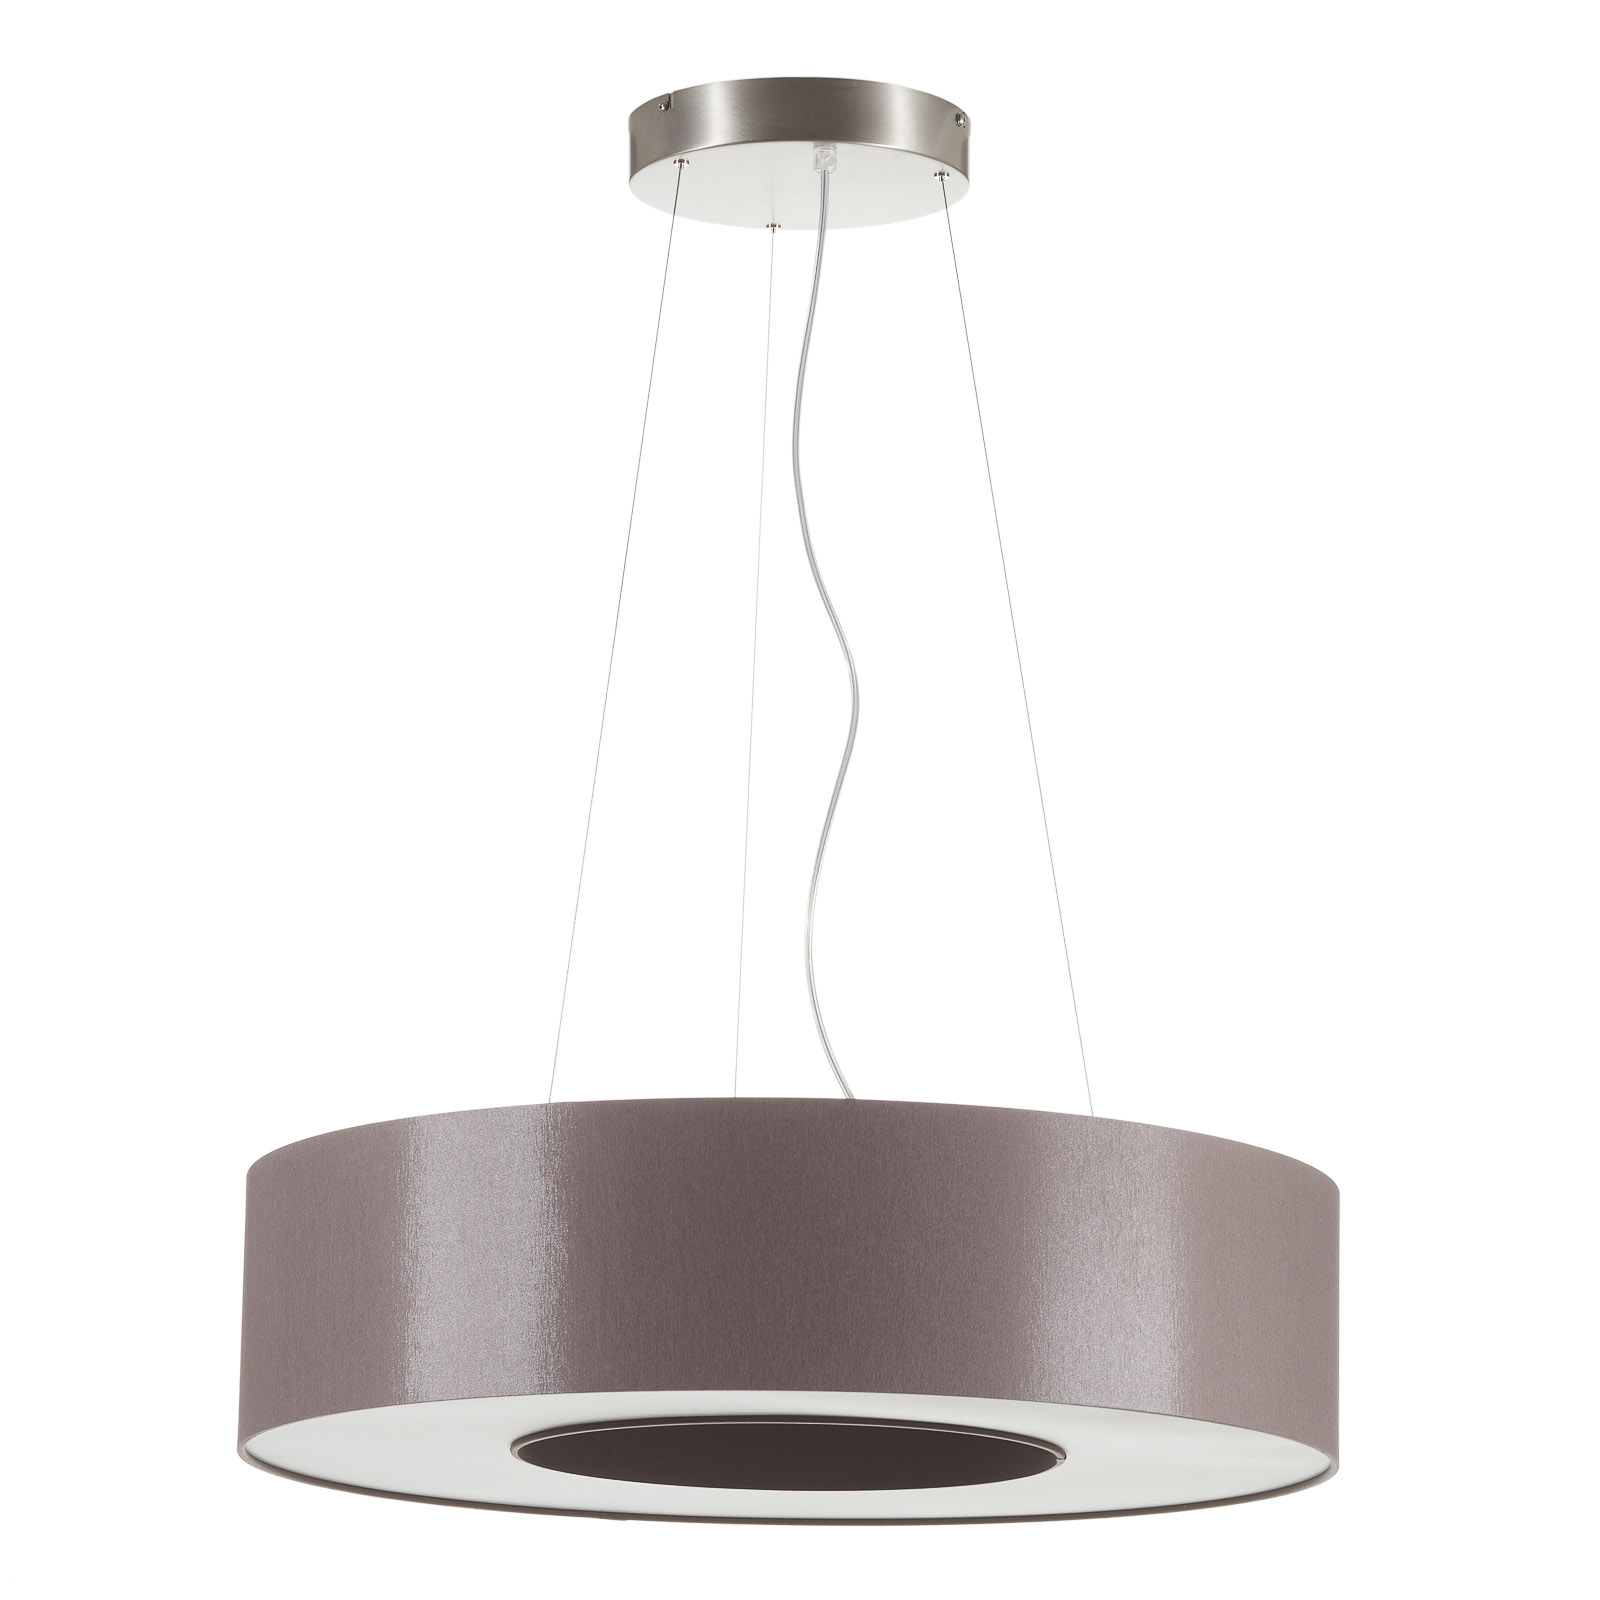 Suspension LED Donut dimmable 22 W taupe